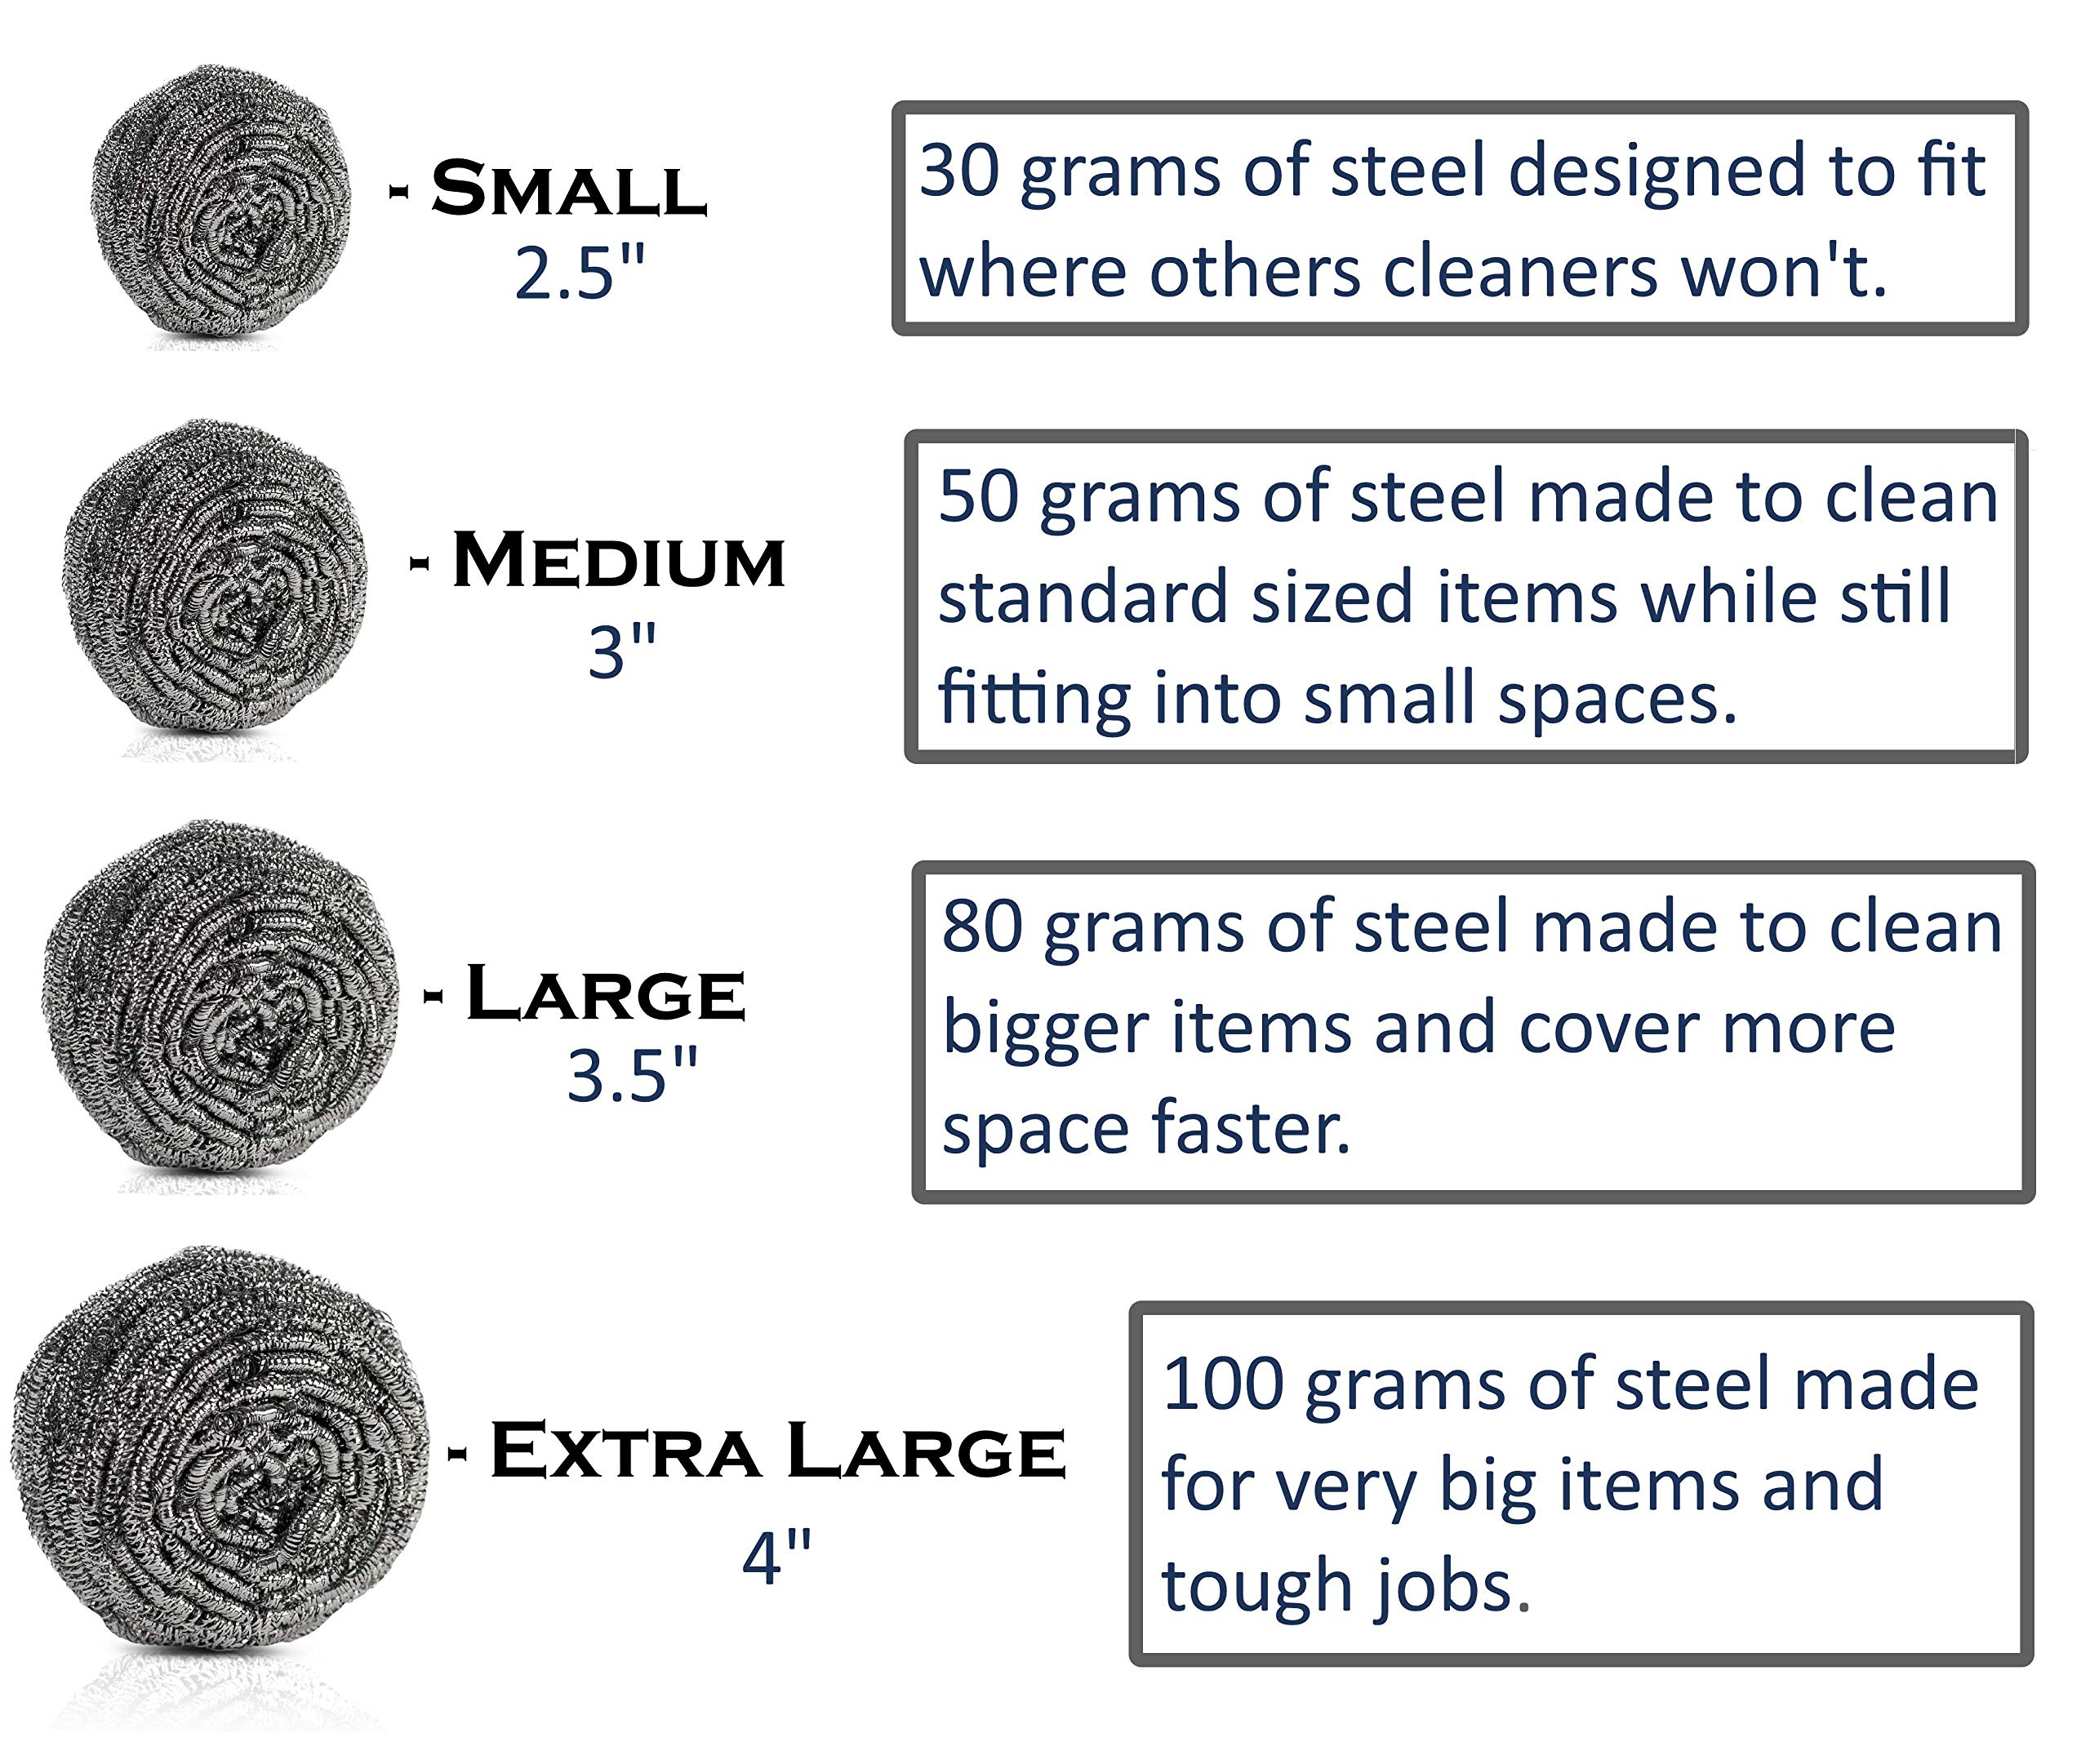 Brheez Stainless Steel 4'' Scouring Pads - EXTRA LARGE Heavy Duty Industrial & Commercial Individually Wrapped Scrubbing Wool Sponges (Pack of 12) by brheez (Image #7)